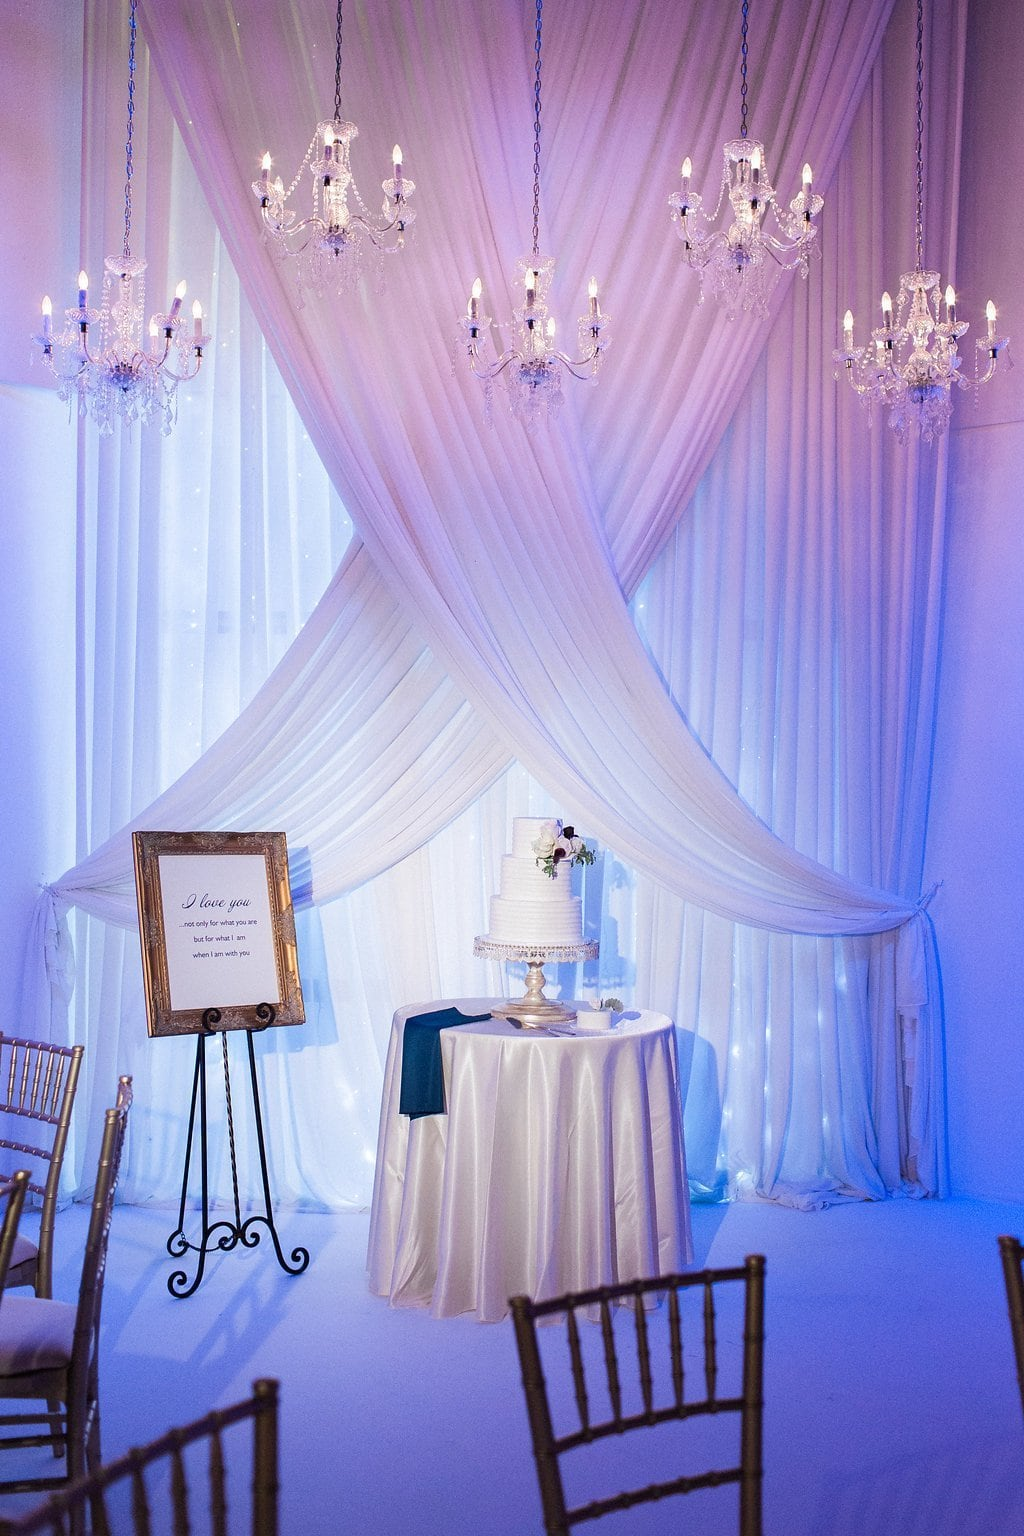 Wedding cake under chandeliers at reception at J. Verno Studios - J Verno Studios Winter Wedding